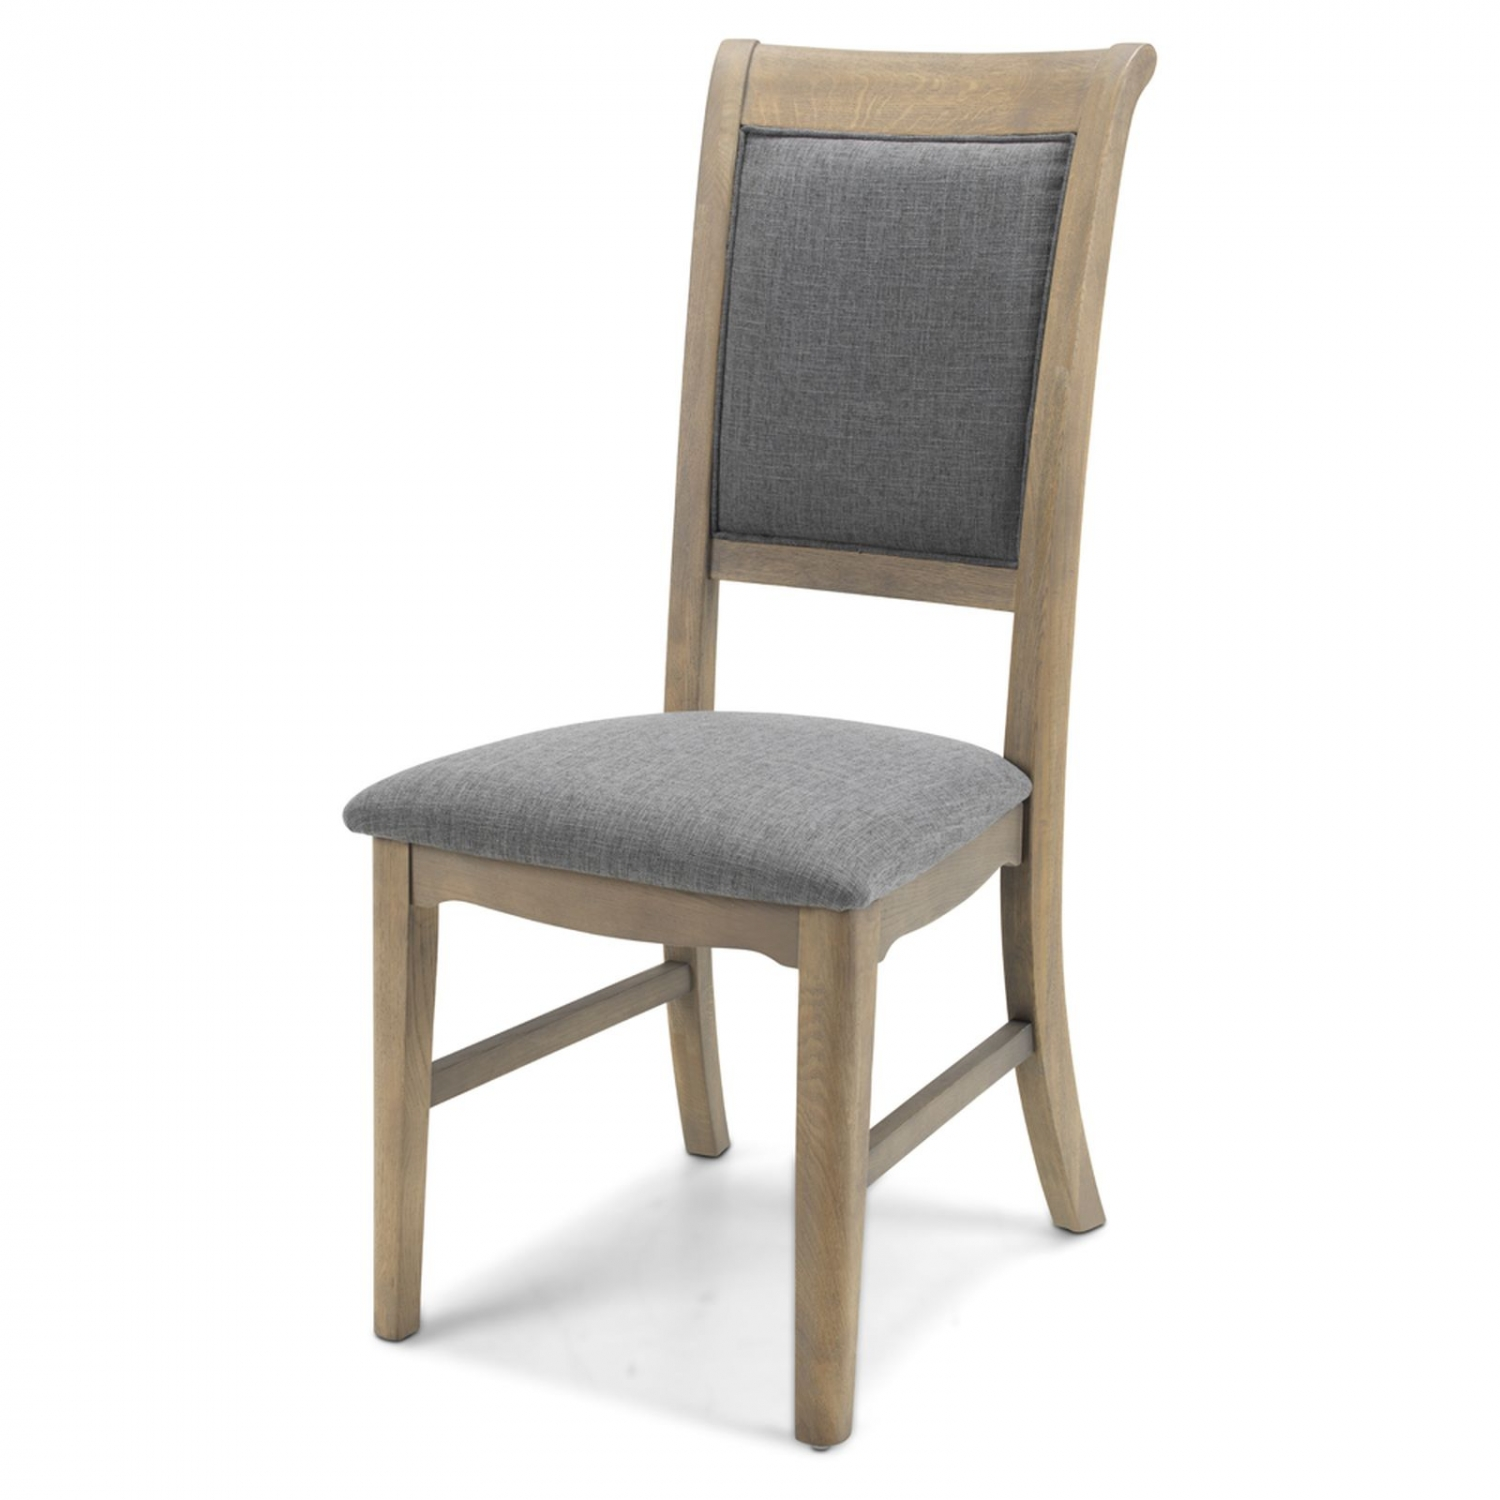 Details about Welford Oak Furniture Grey Set of Two Upholstered Dining Room  Chairs